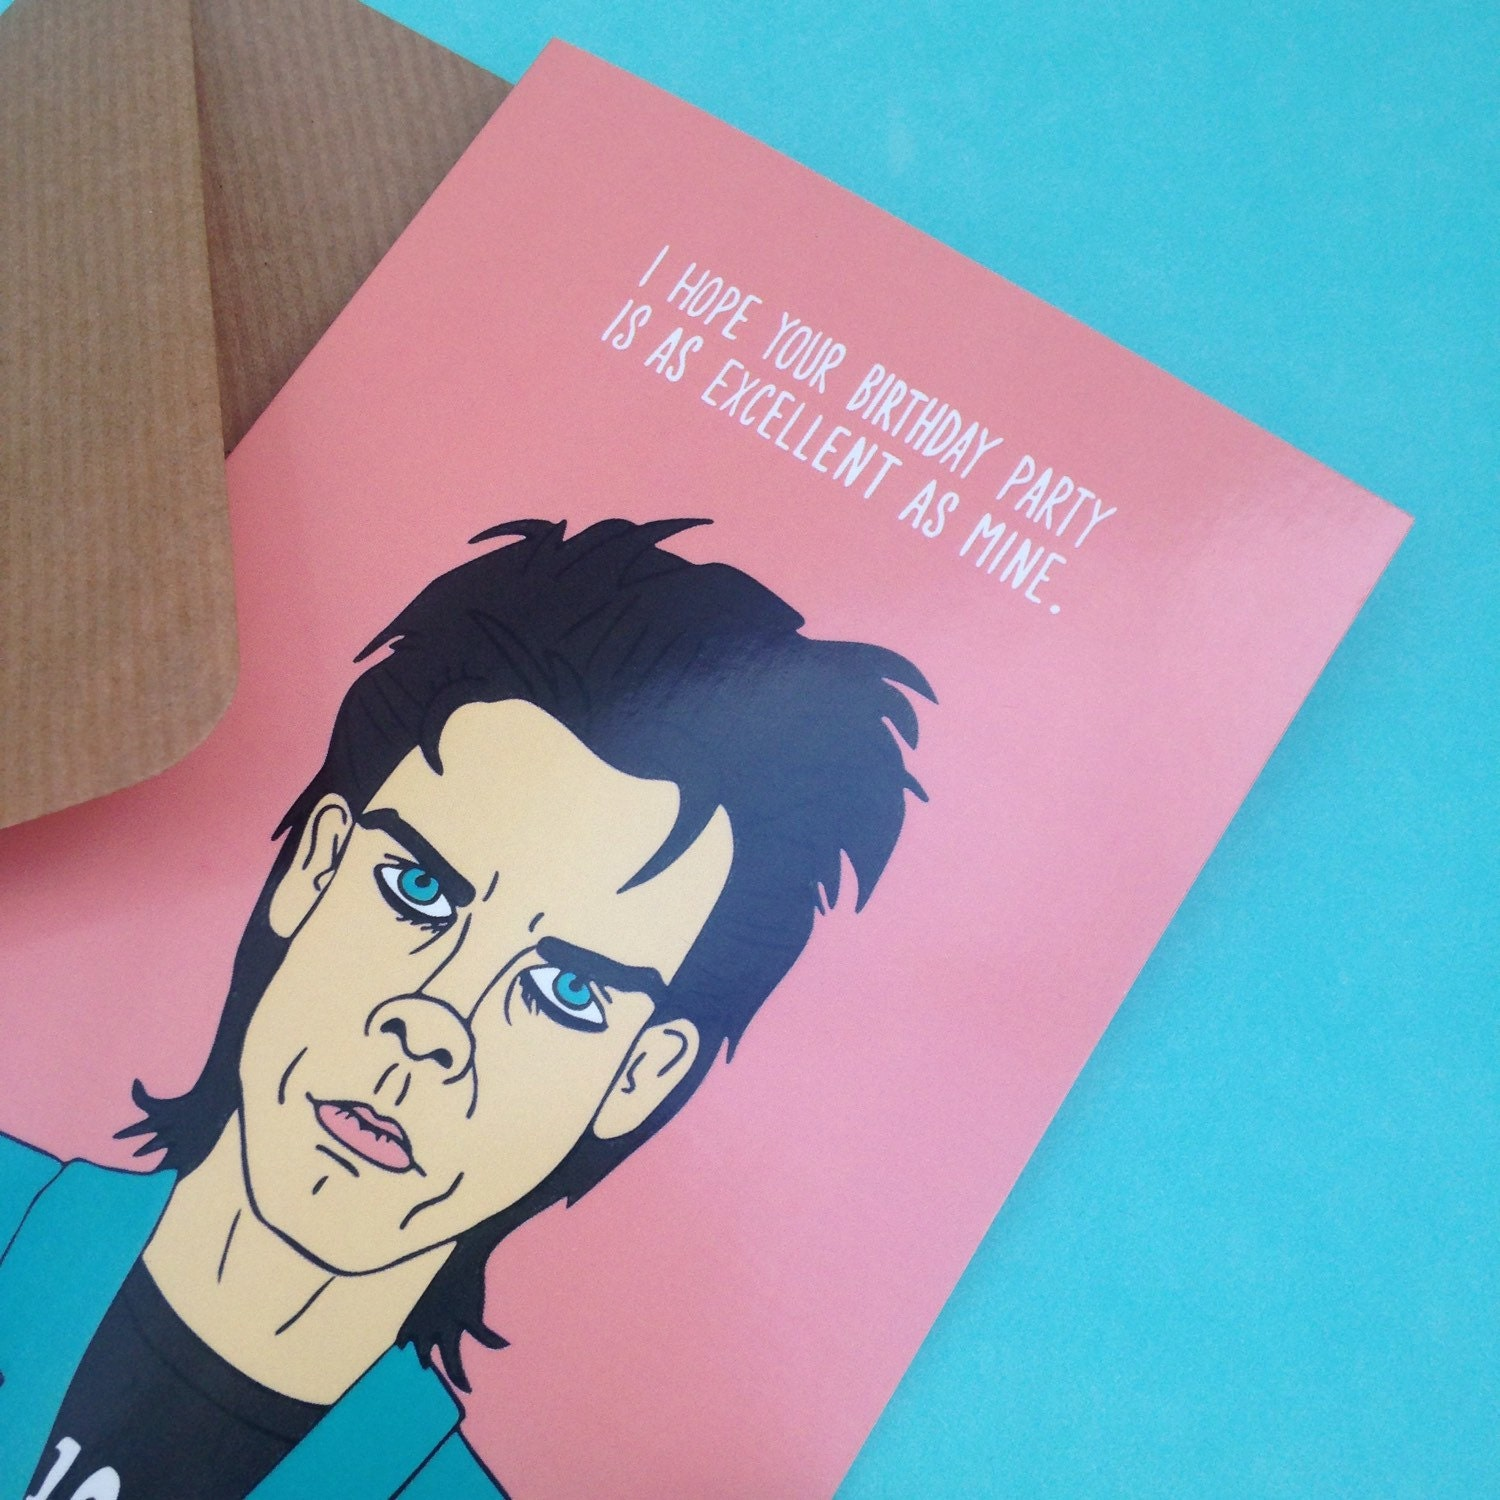 Nick cave birthday party greetings card from full colour zoom kristyandbryce Choice Image